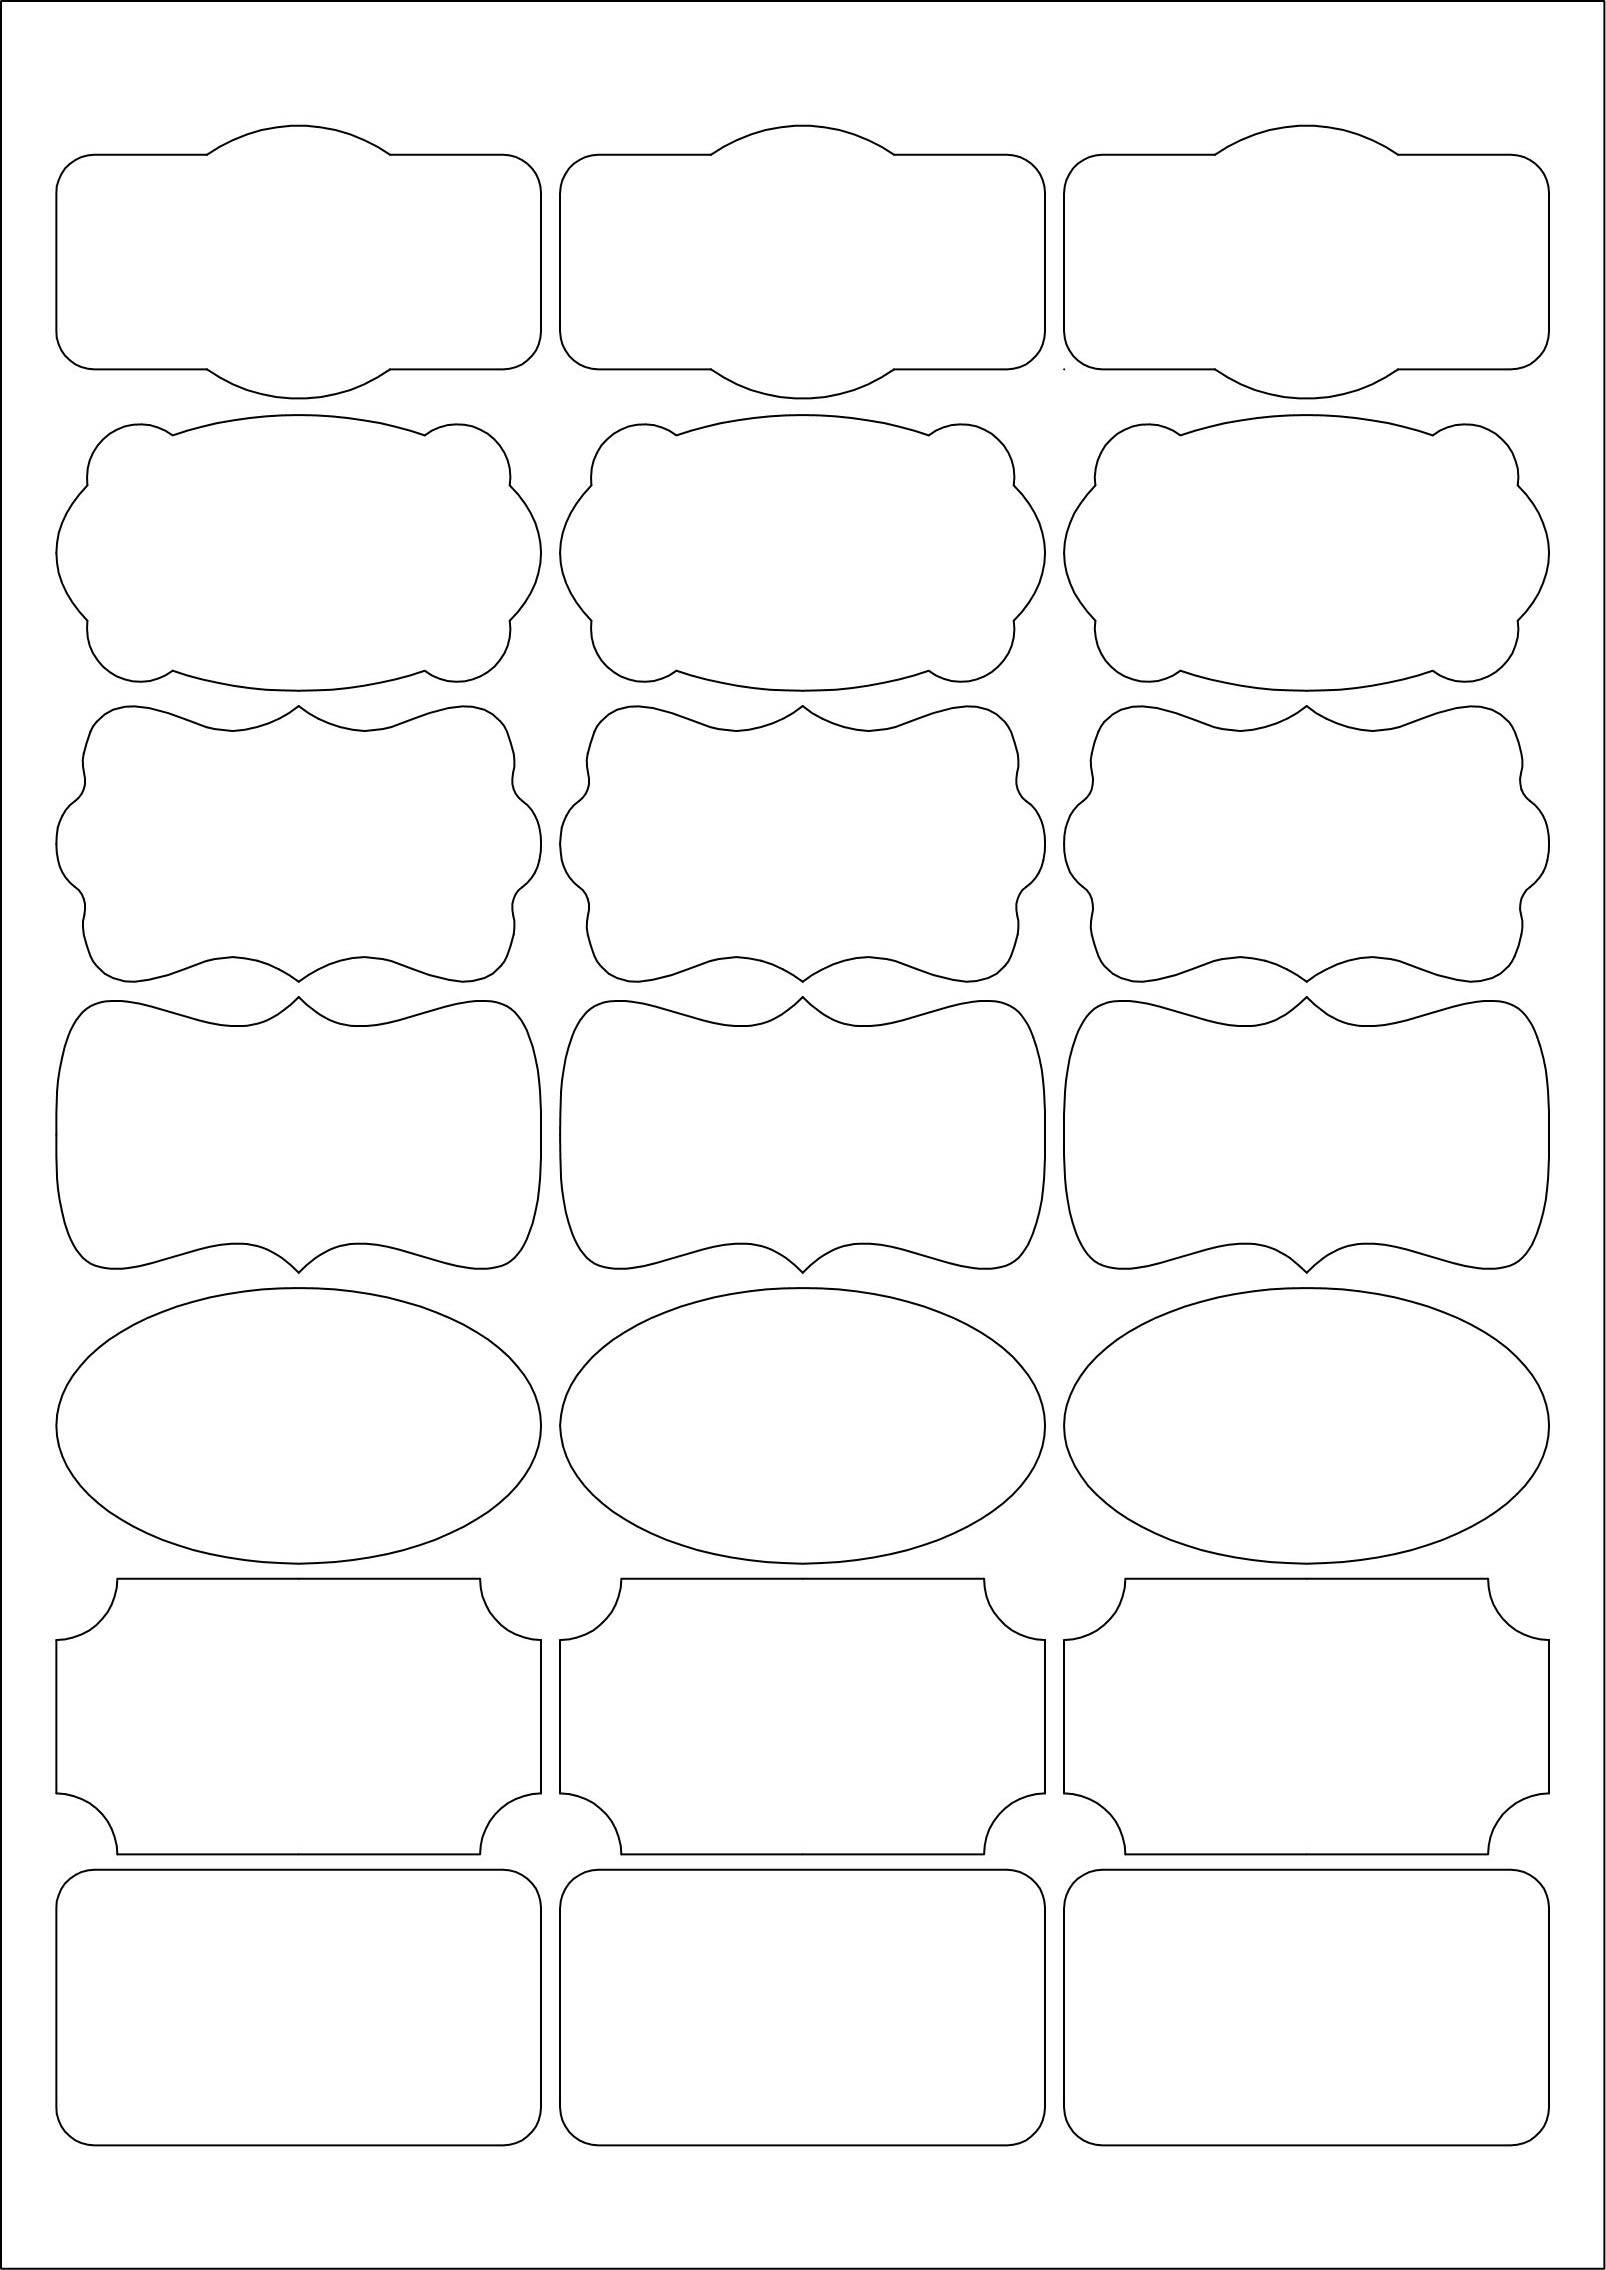 Mr171 7 types of fancy shape 63 5 x a4 sheet for Labels by the sheet templates